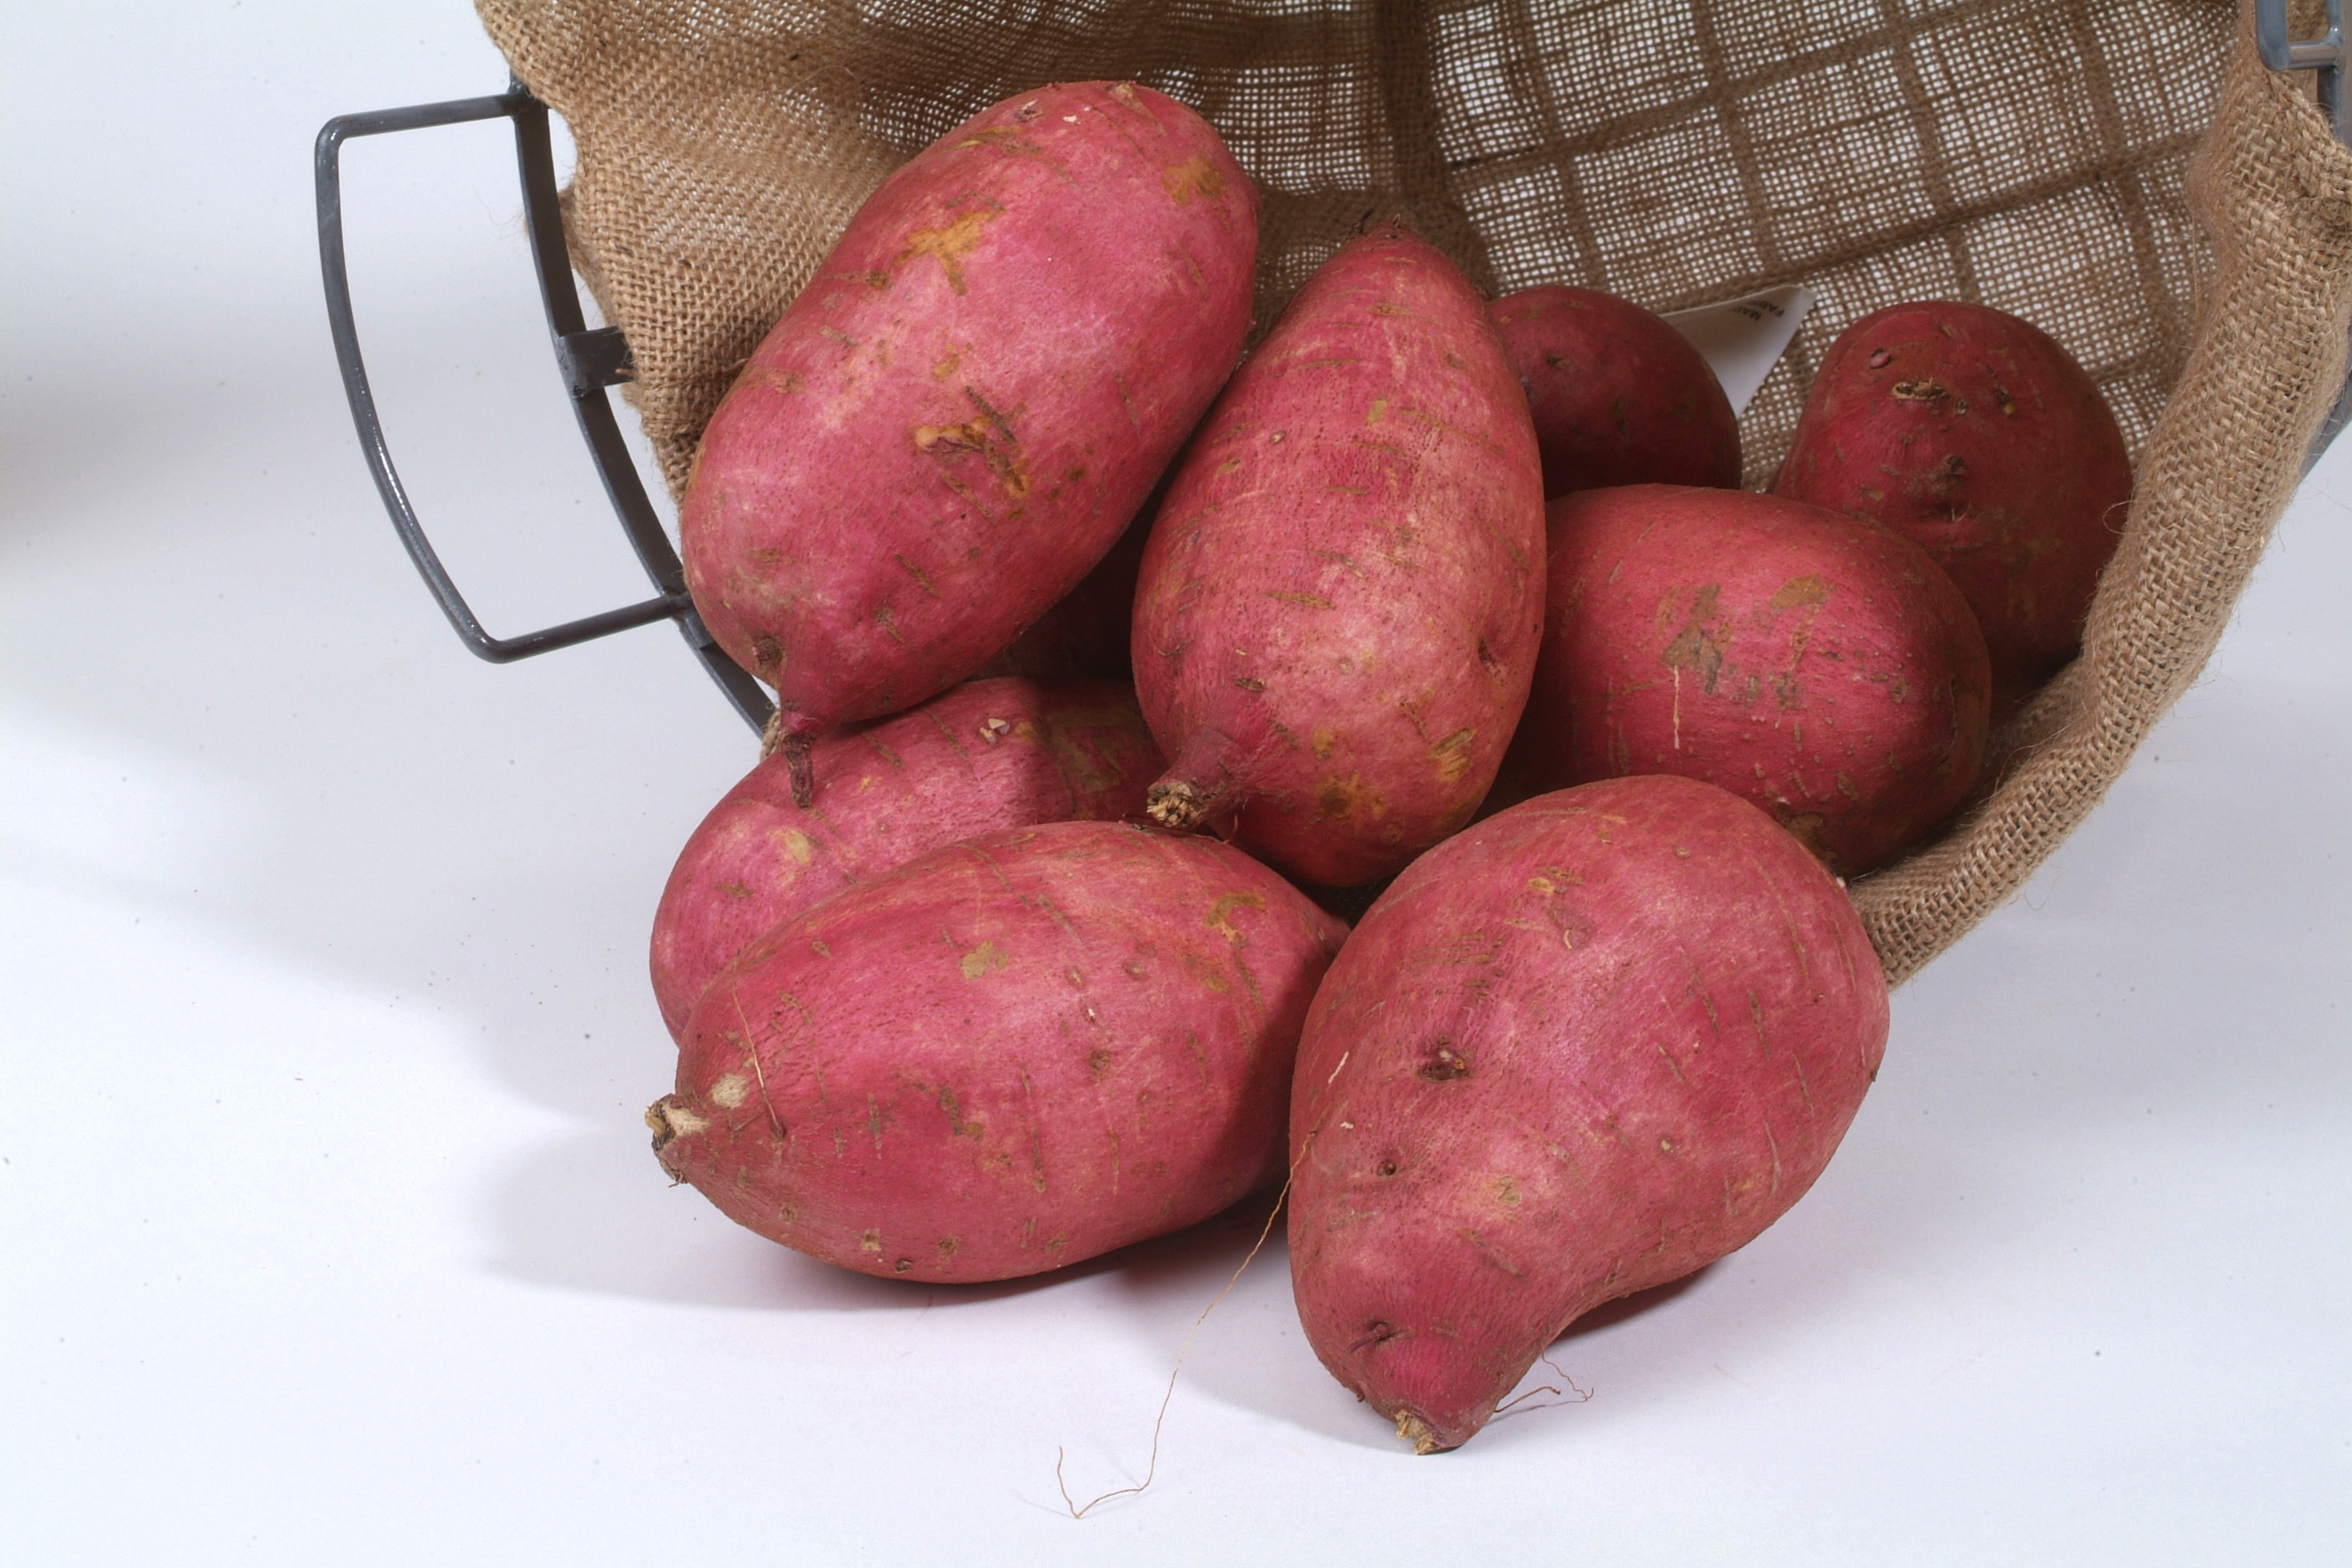 Bright red-skinned sweet potatoes in basket.